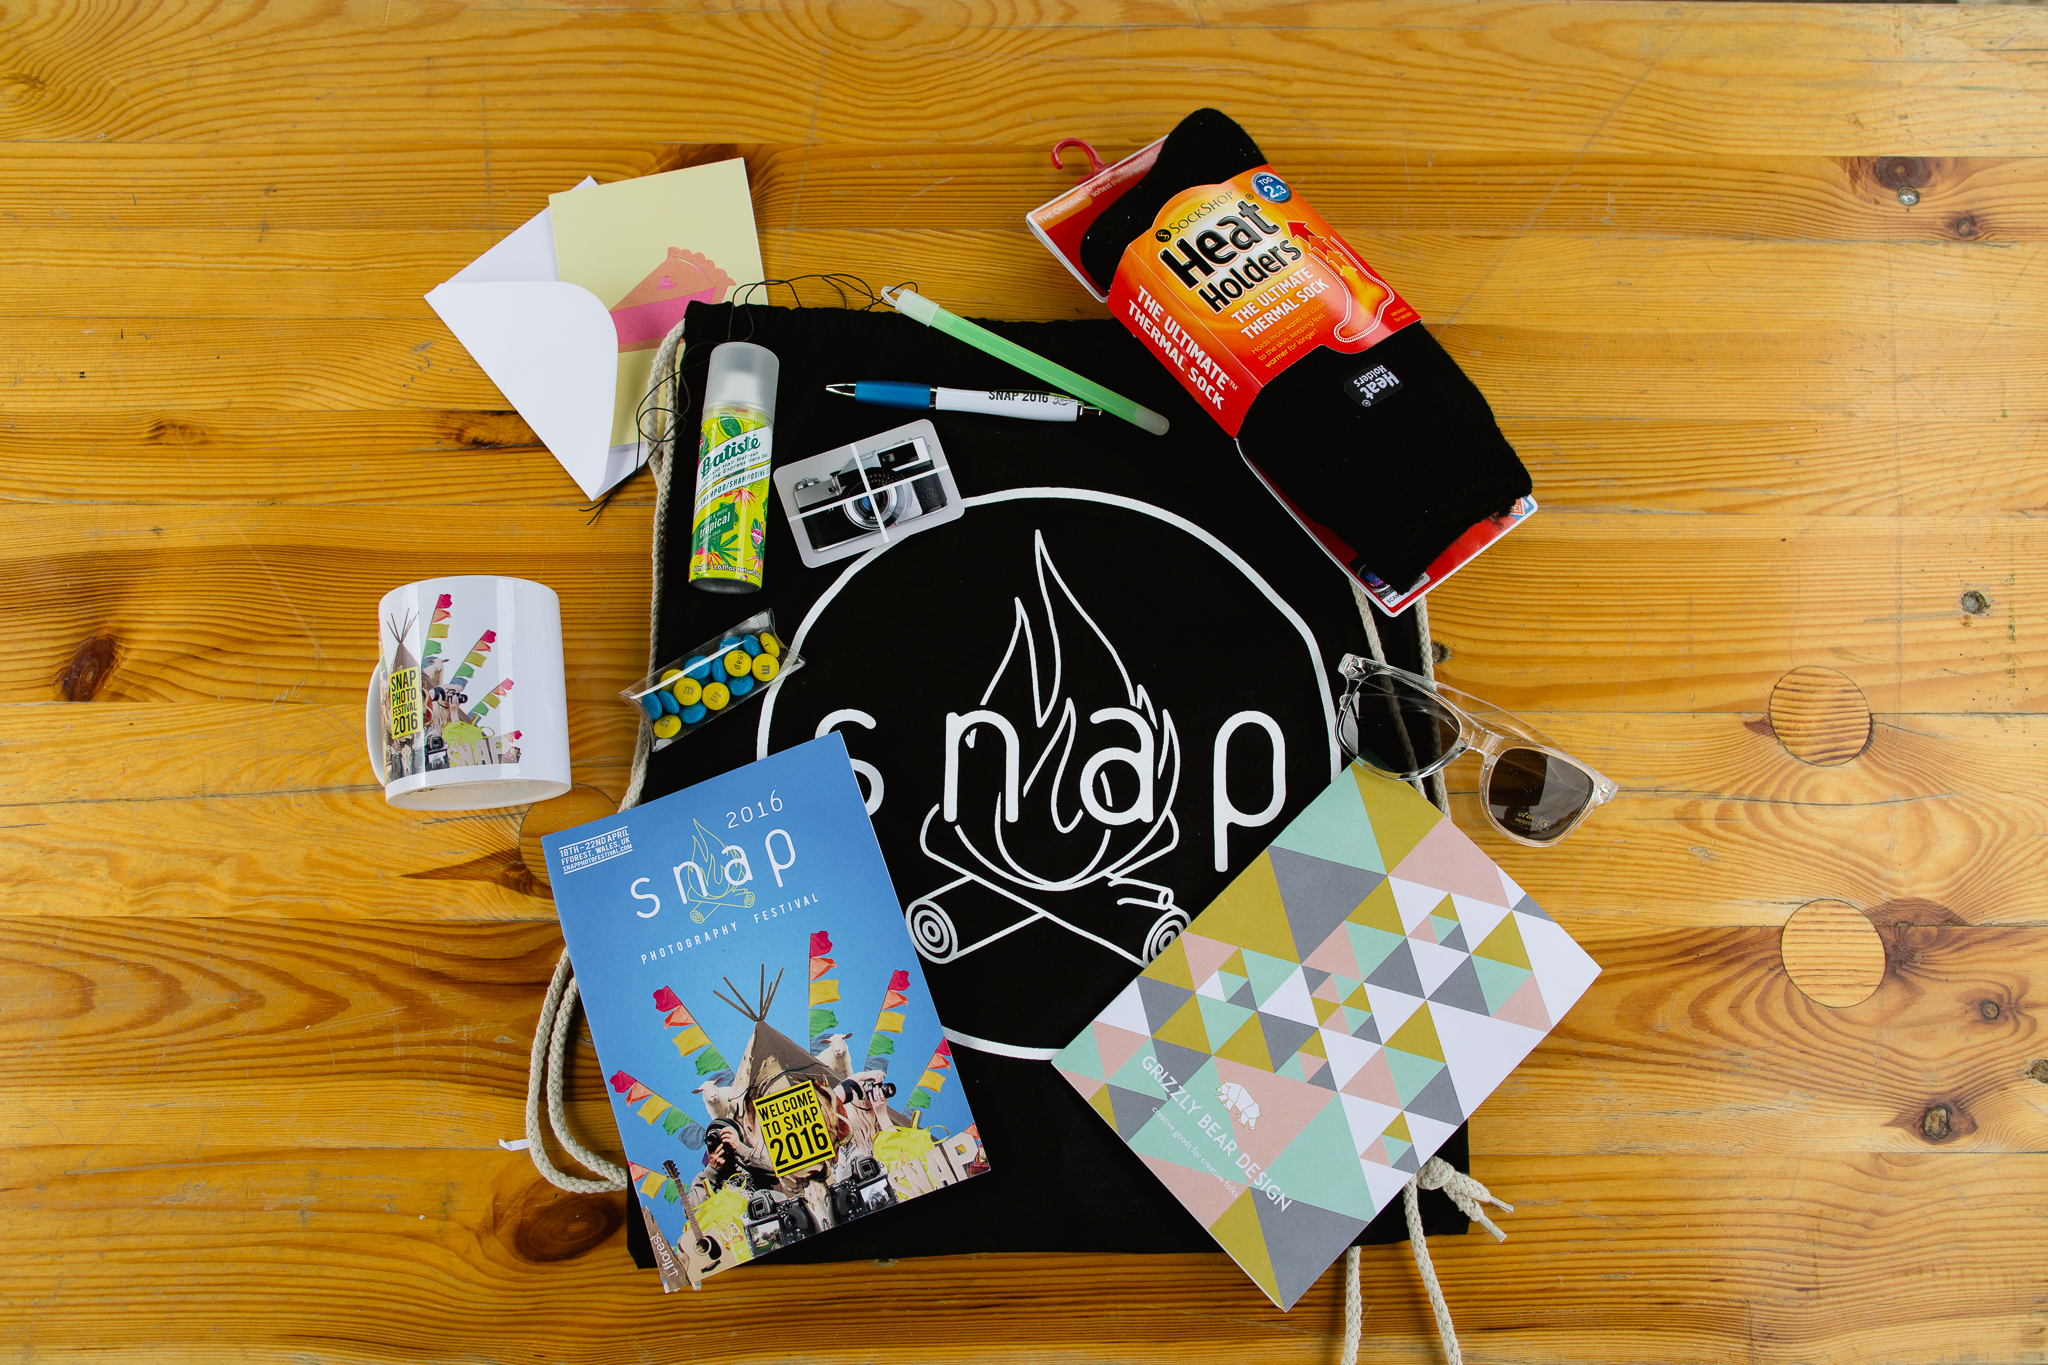 snap photography festival goodie bags